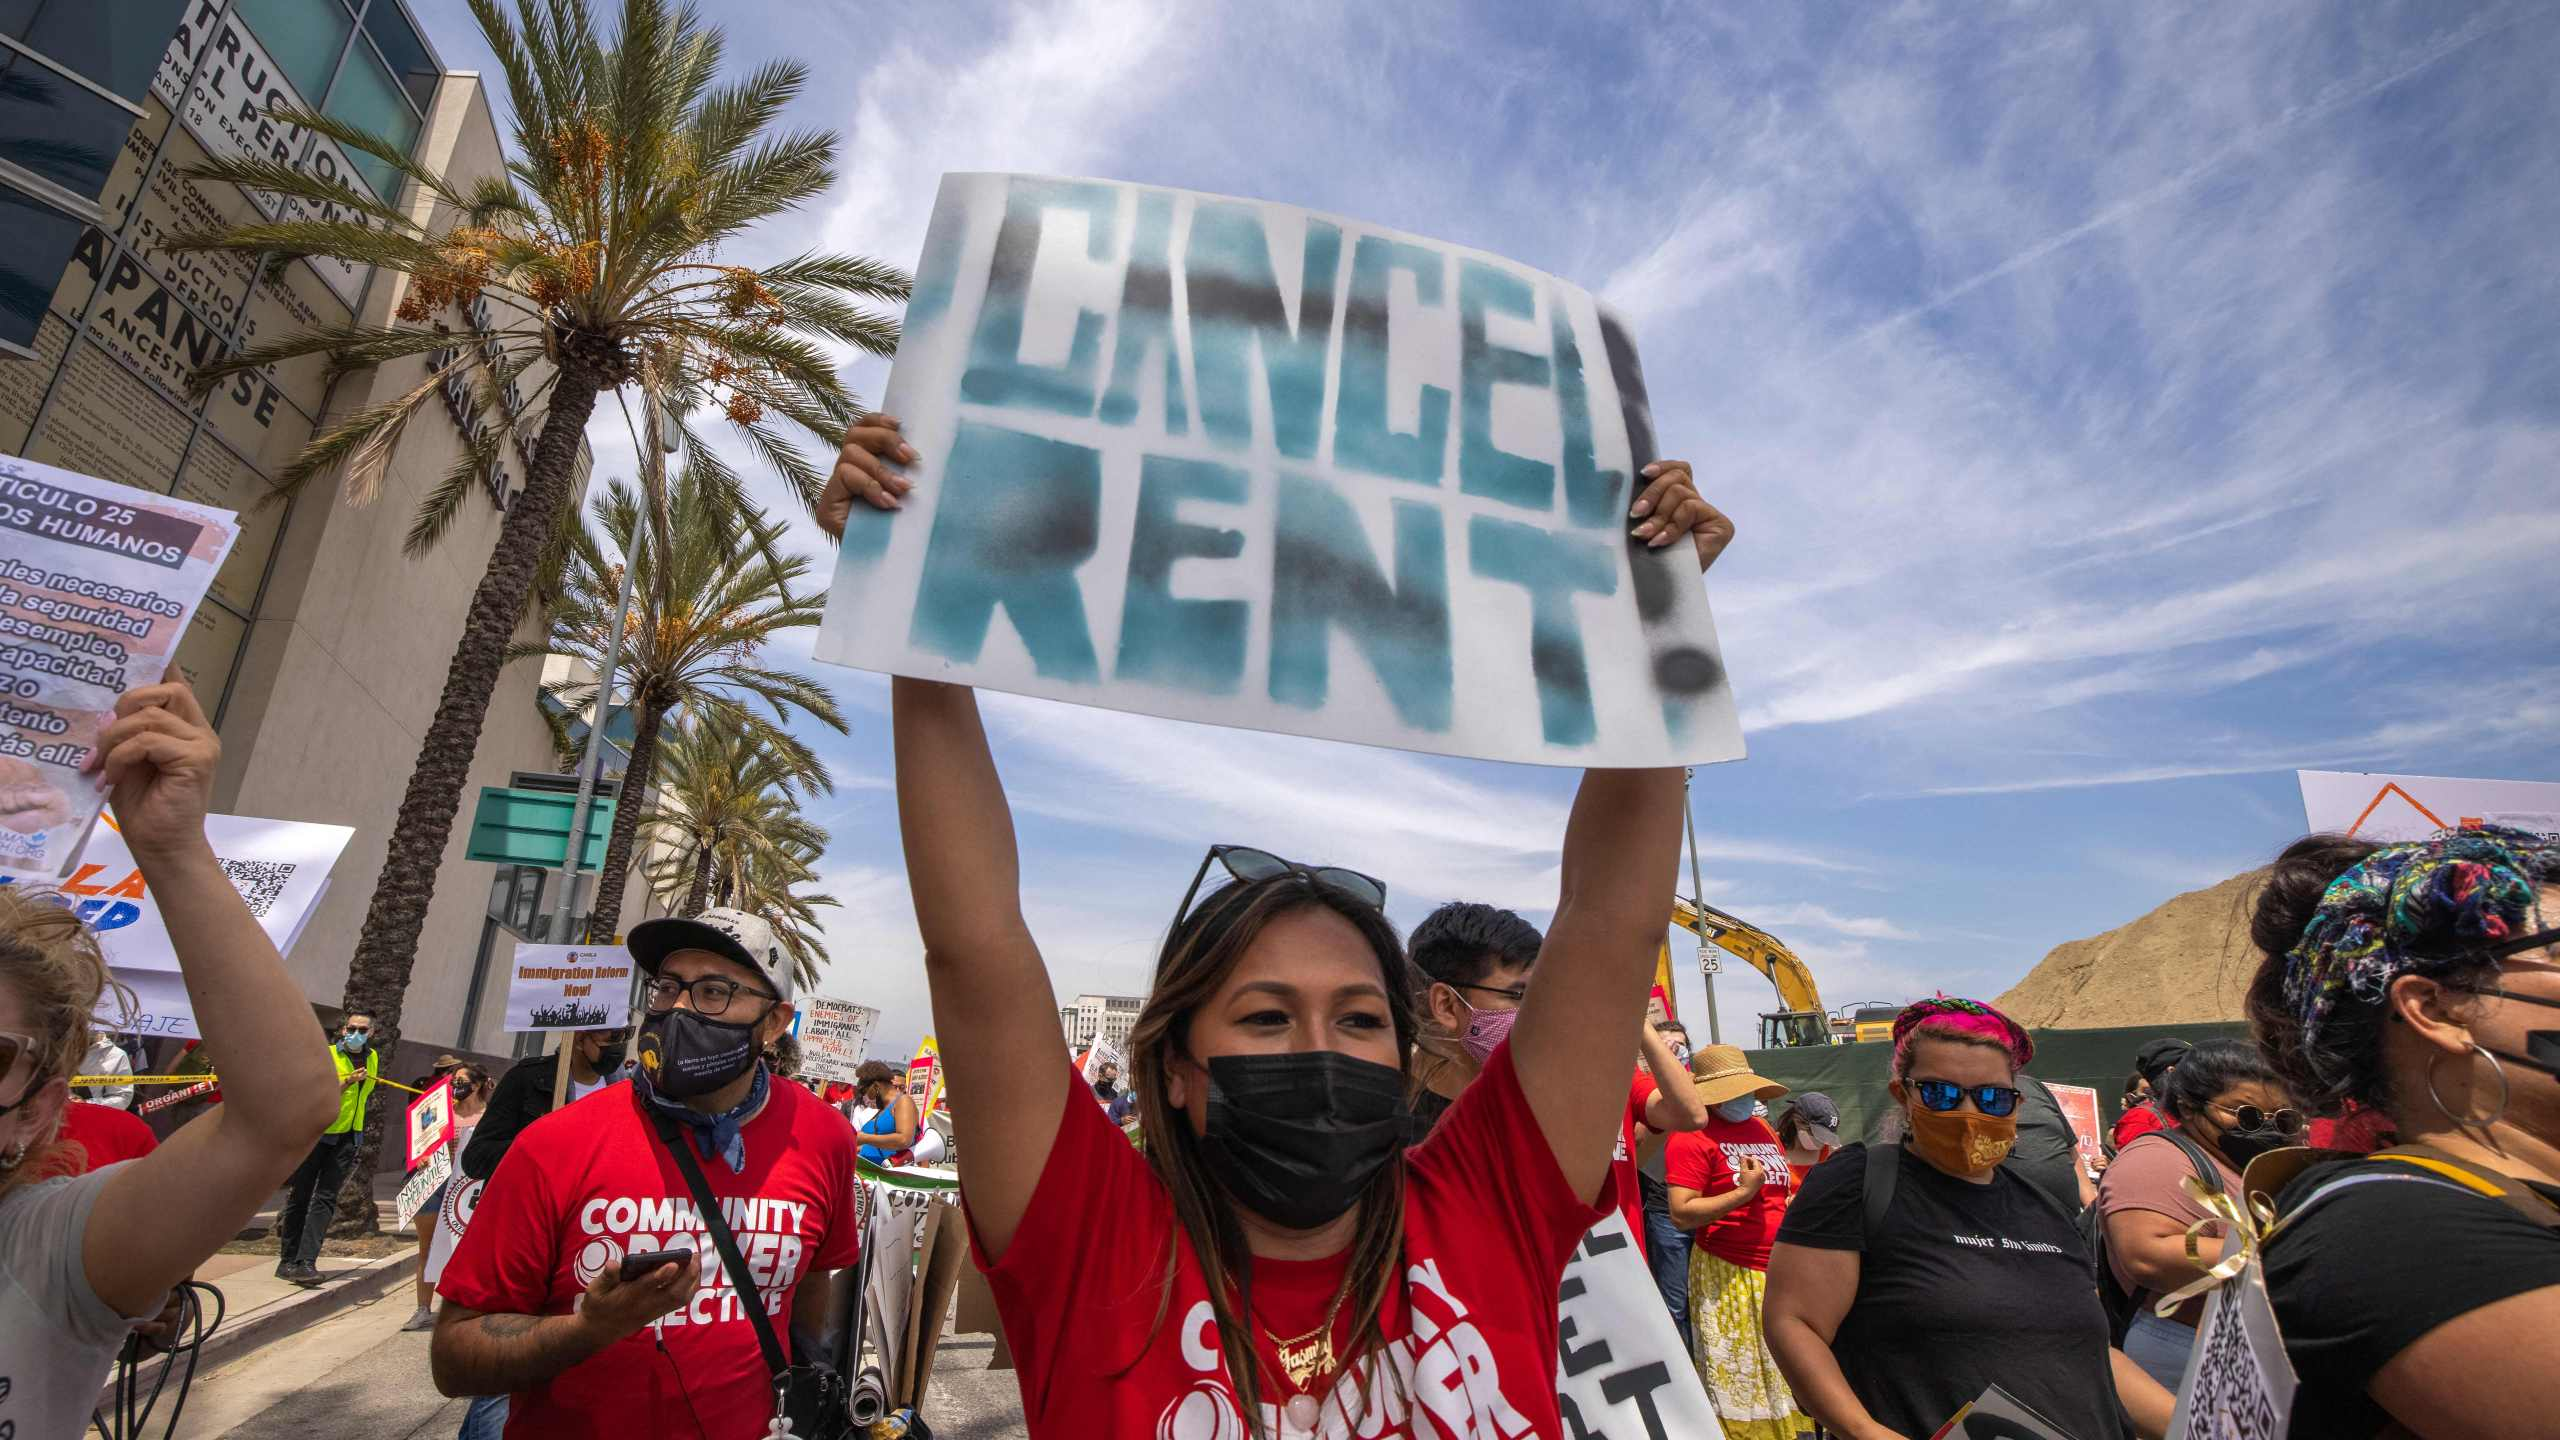 A woman calls for rent relief as a coalition of activist groups and labor unions participate in a May Day march for workers' and human rights in Los Angeles on May 1, 2021. (David McNew / AFP / Getty Images)